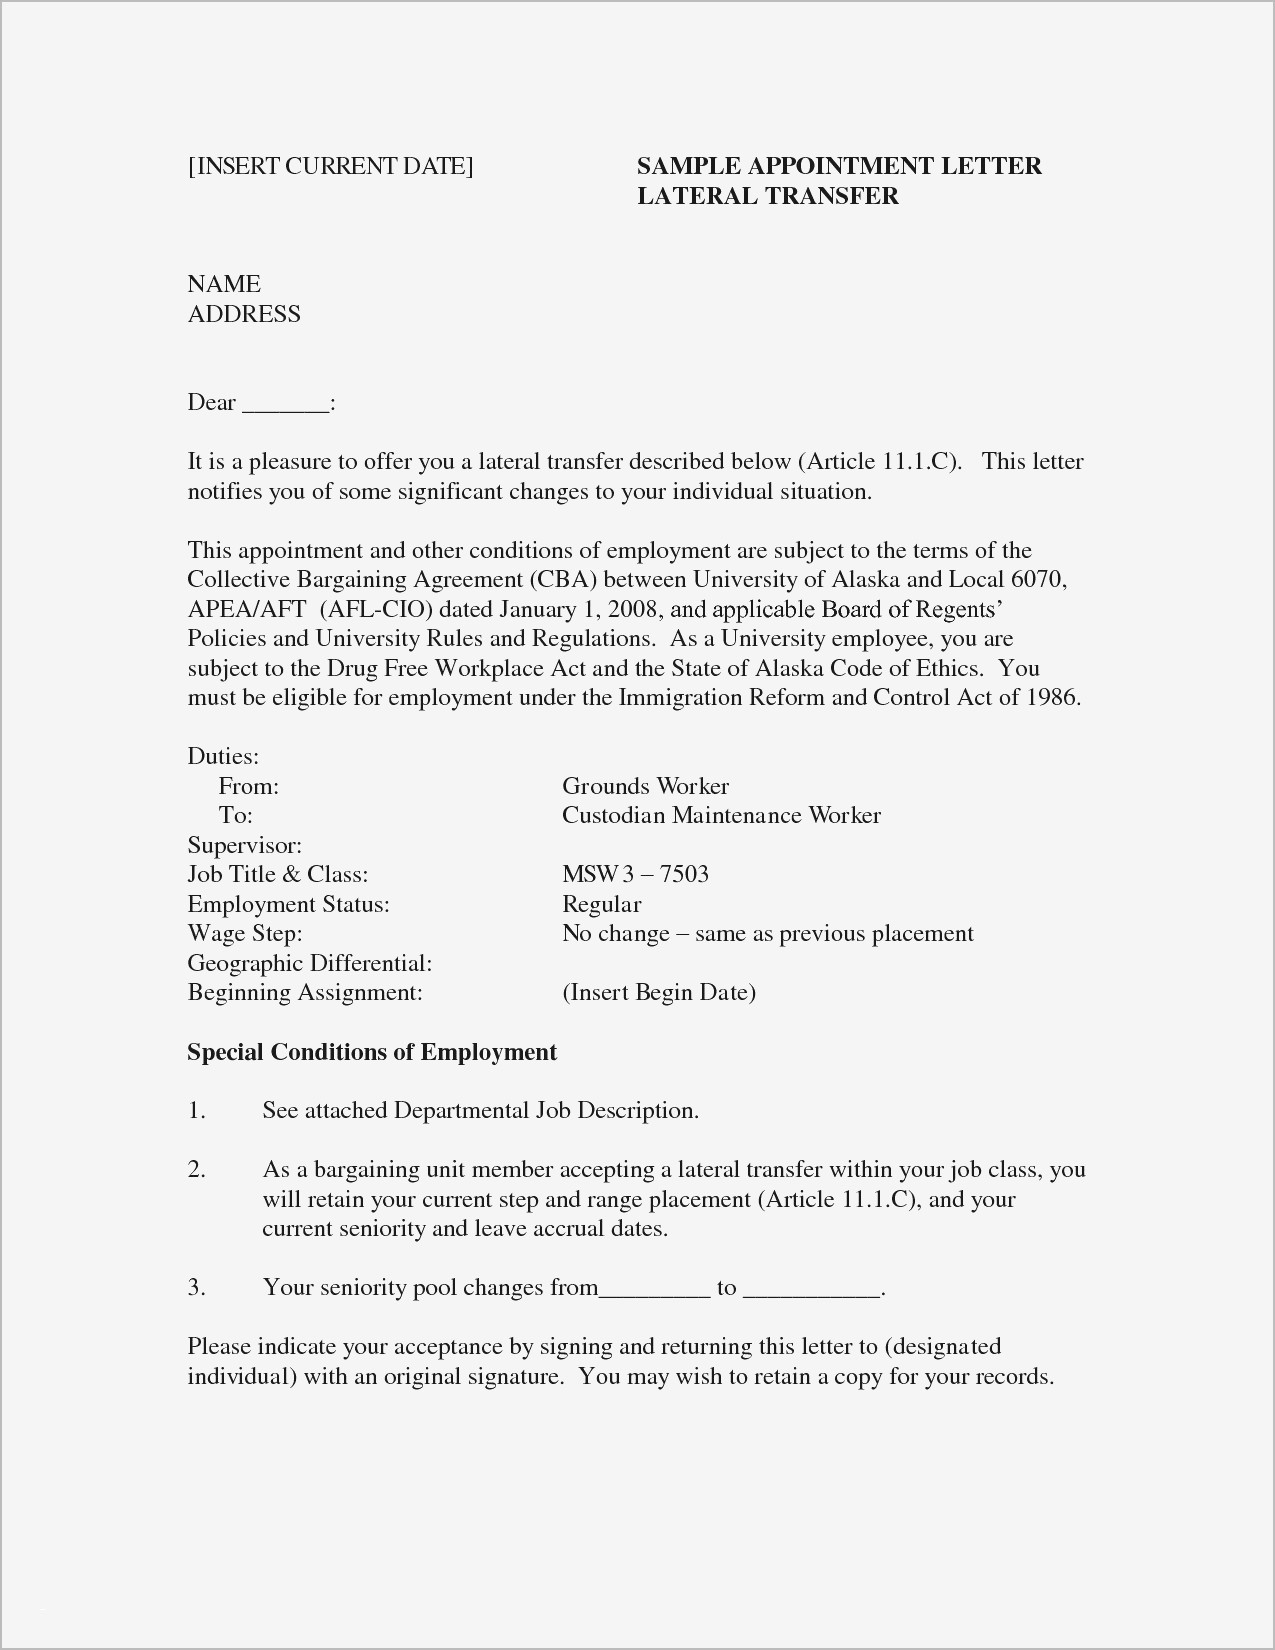 Resume for Construction Worker - 22 Resume for Construction Worker